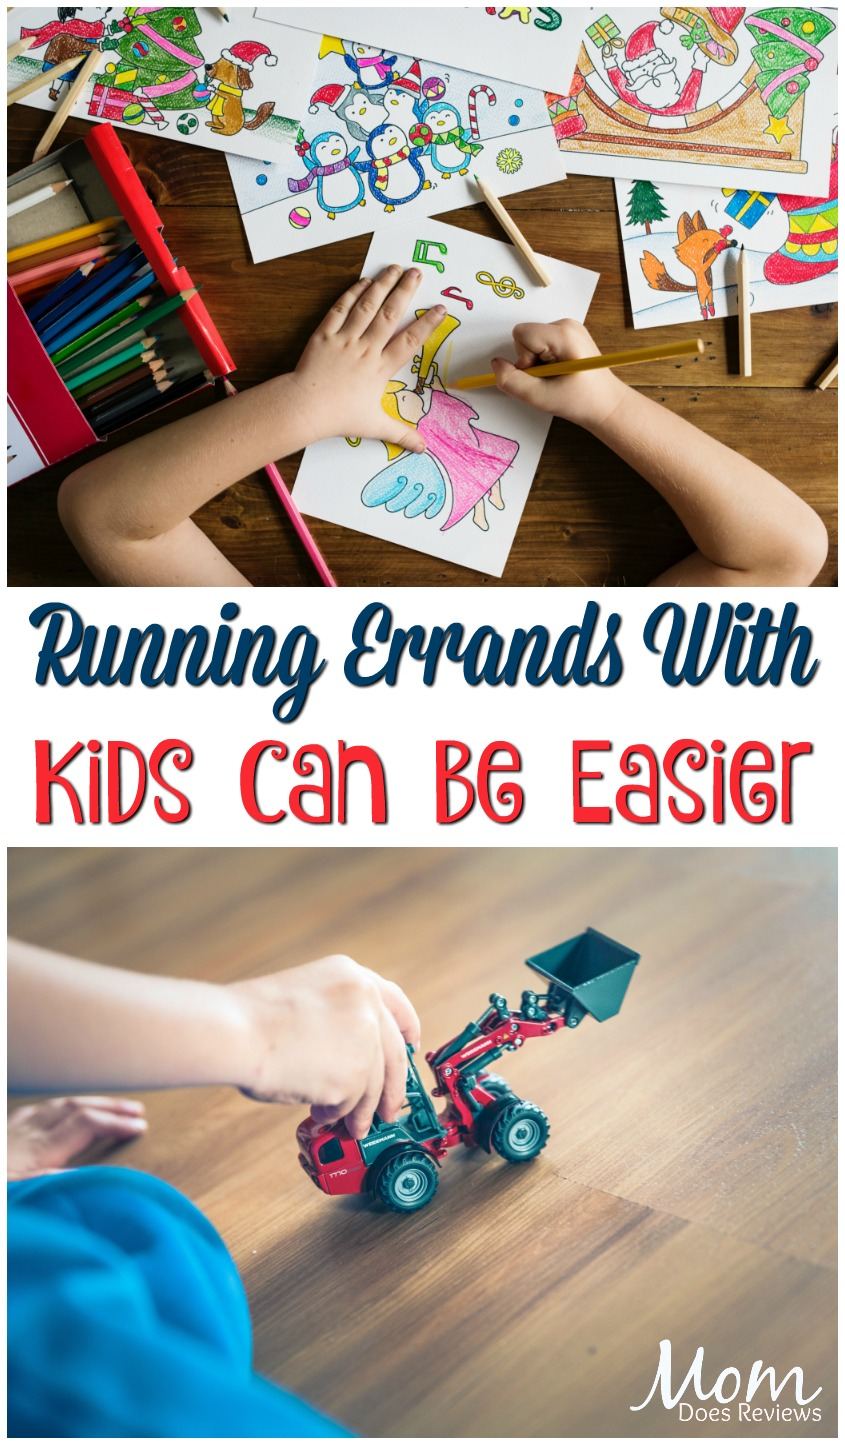 Mama on the Move! 4 Ways to Help Make Running Errands with Kids Easier #parenting #kids #busymom #momlife